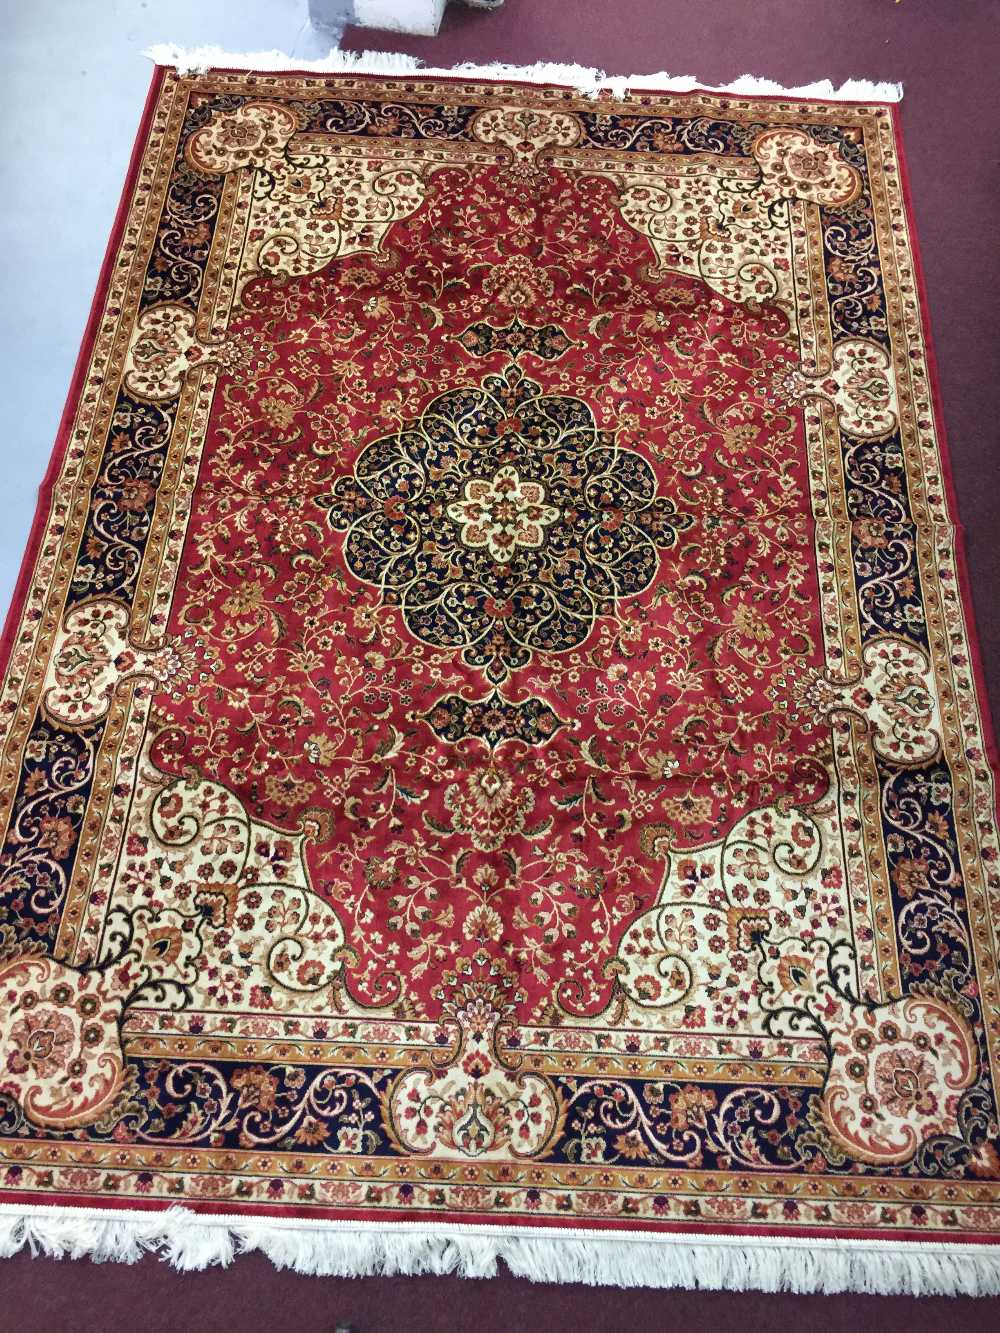 Lot 36 - @21st cent. Carpets: Keshan carpet, red ground. 2.80 x 2.00